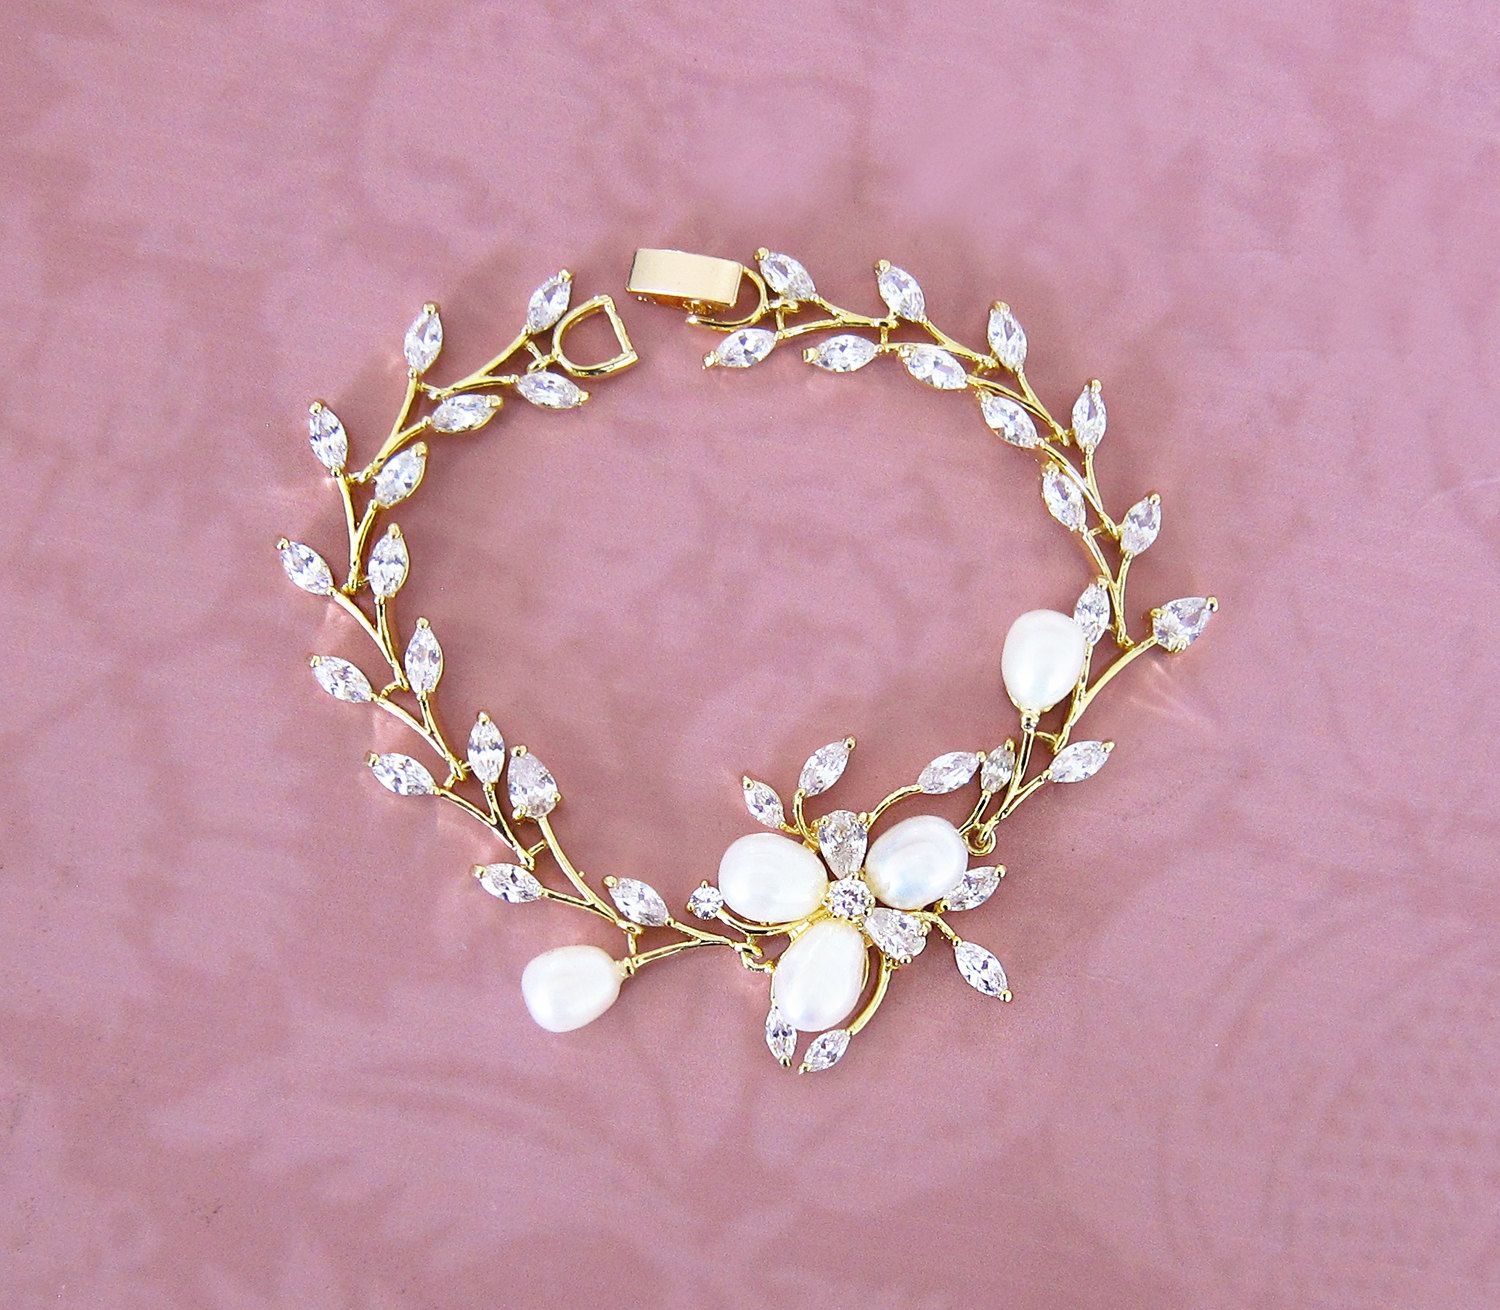 a obniiis wedding katasifat bracelet with com for your reference jewelry idea day